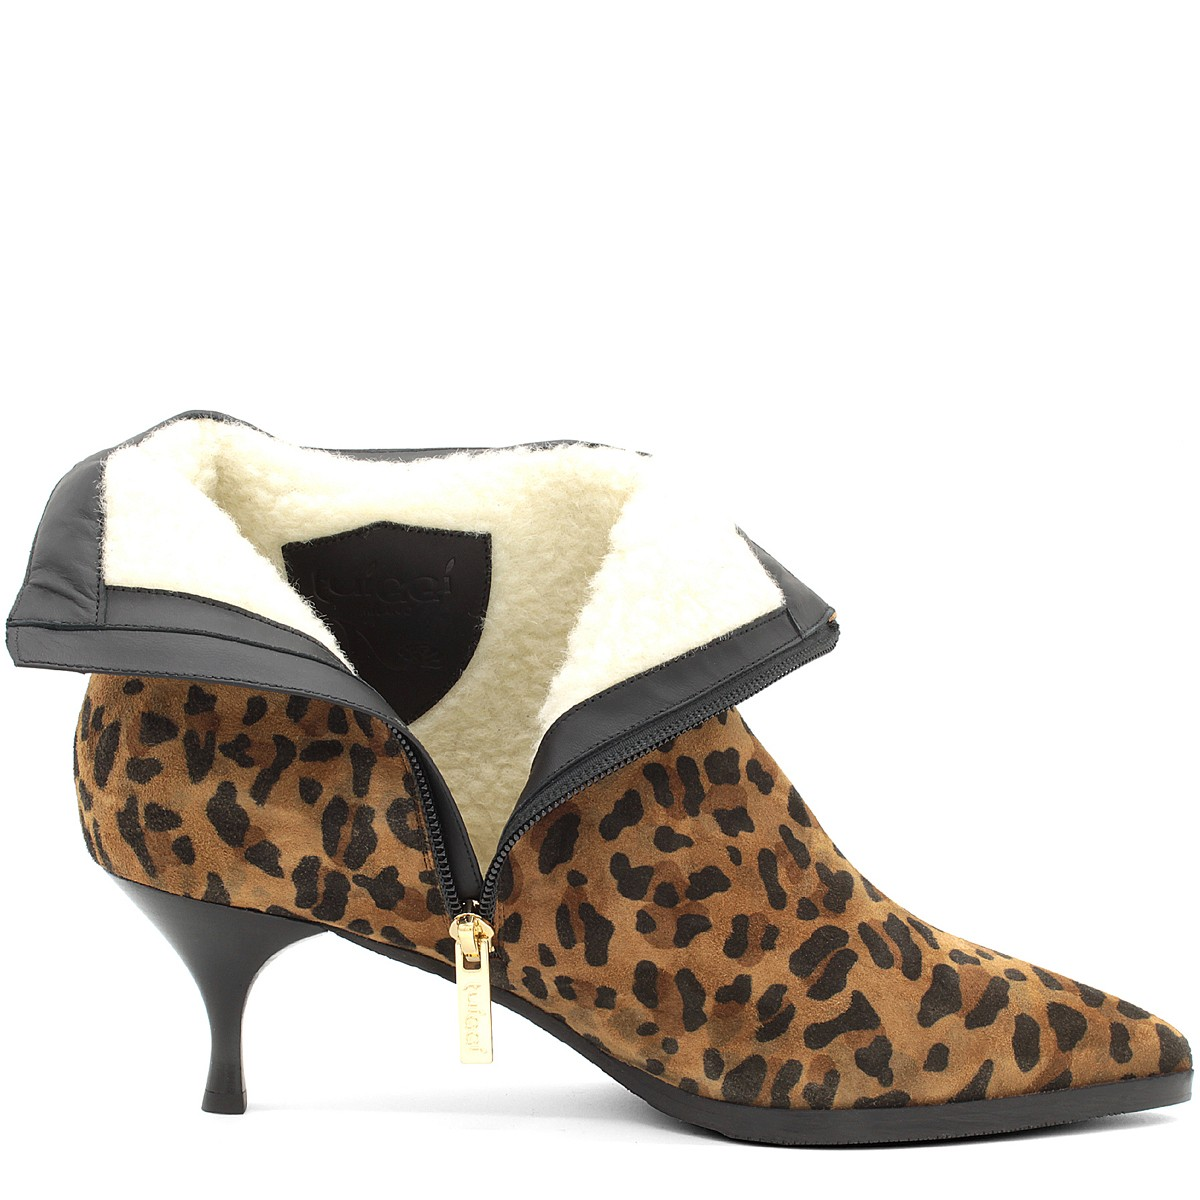 LEO SUEDE STYLISH WOOL FUR LINED ANKLE BOOTS